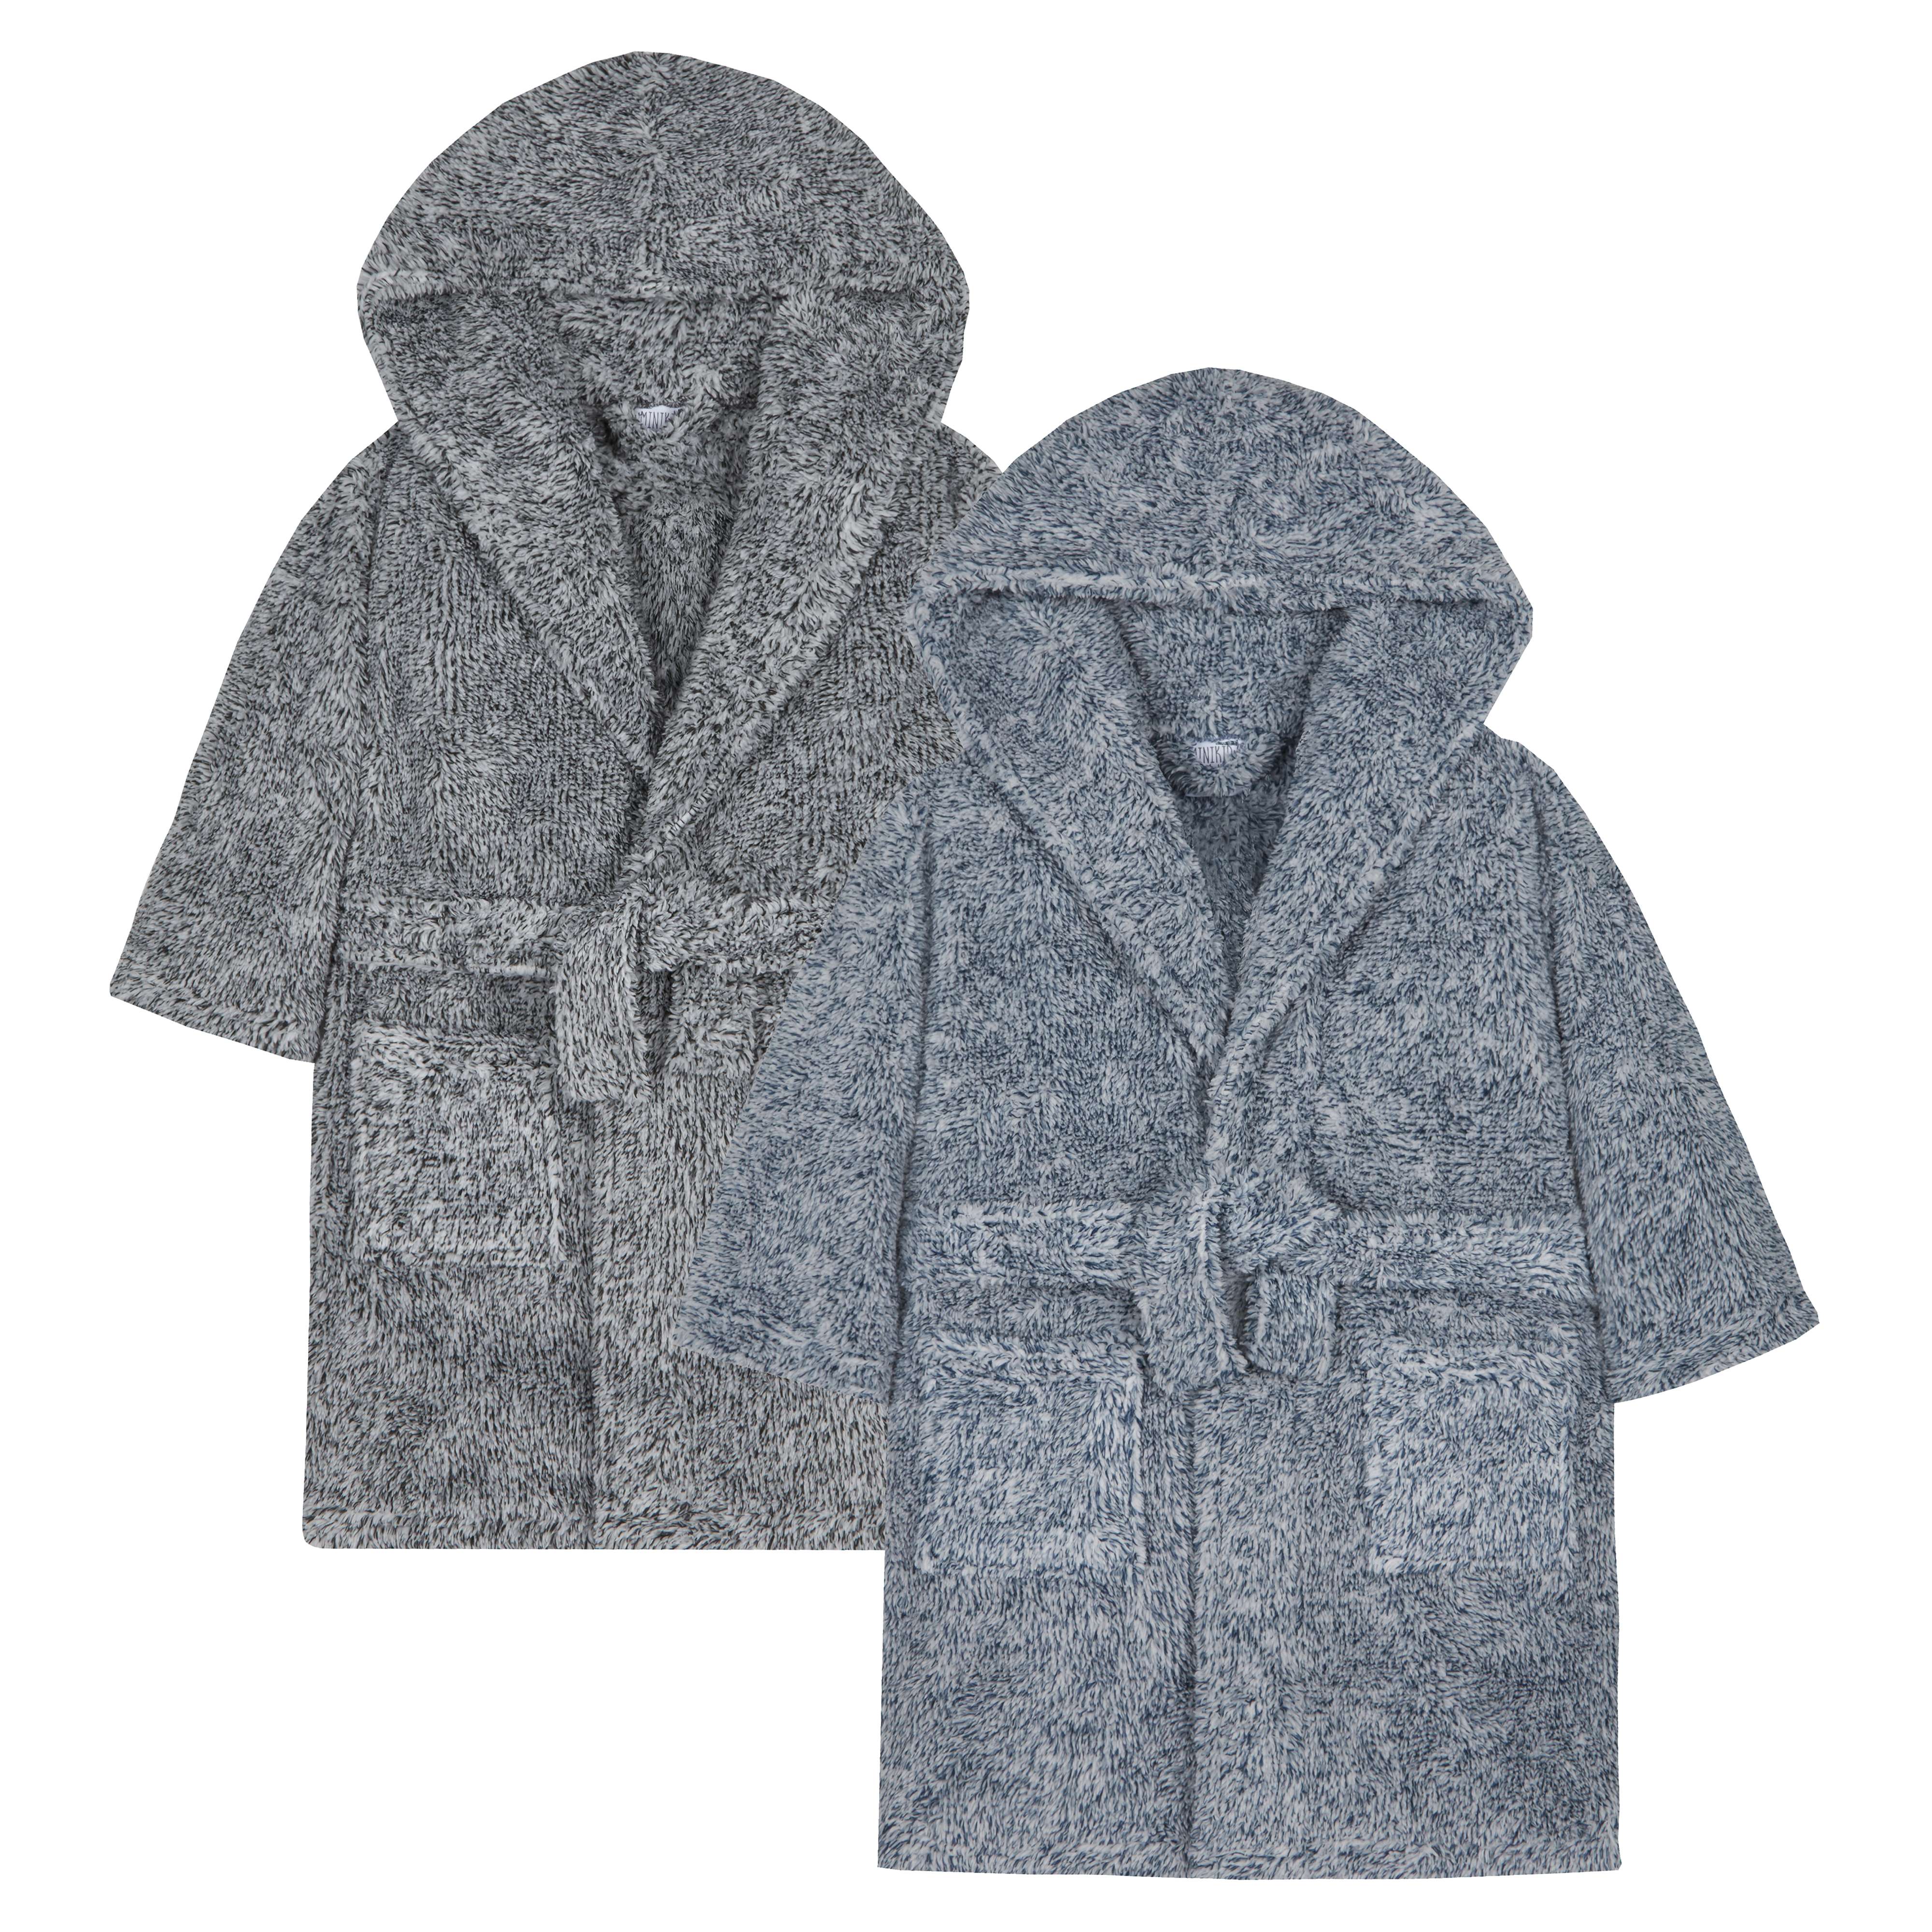 a0bc196d52 Boys Two Tone Snuggle Fleece Dressing Gown Robe Warm Fluffy Hooded Pockets  Soft